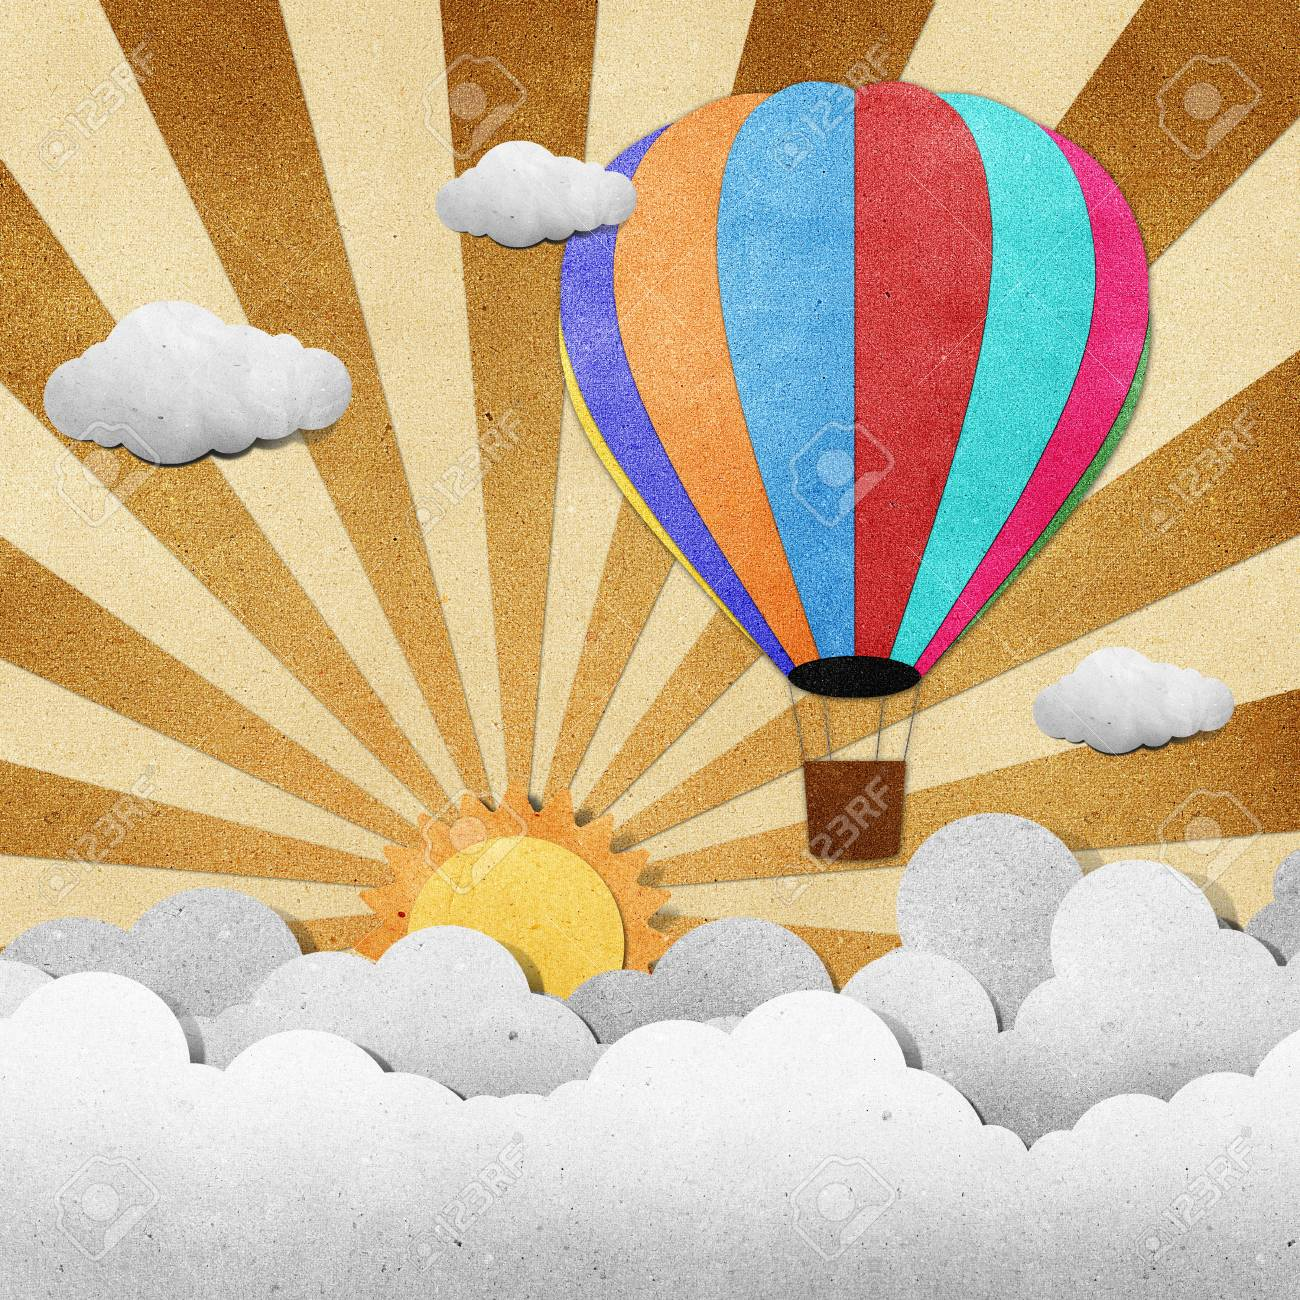 Balloon made from recycled paper background Stock Photo - 14670890